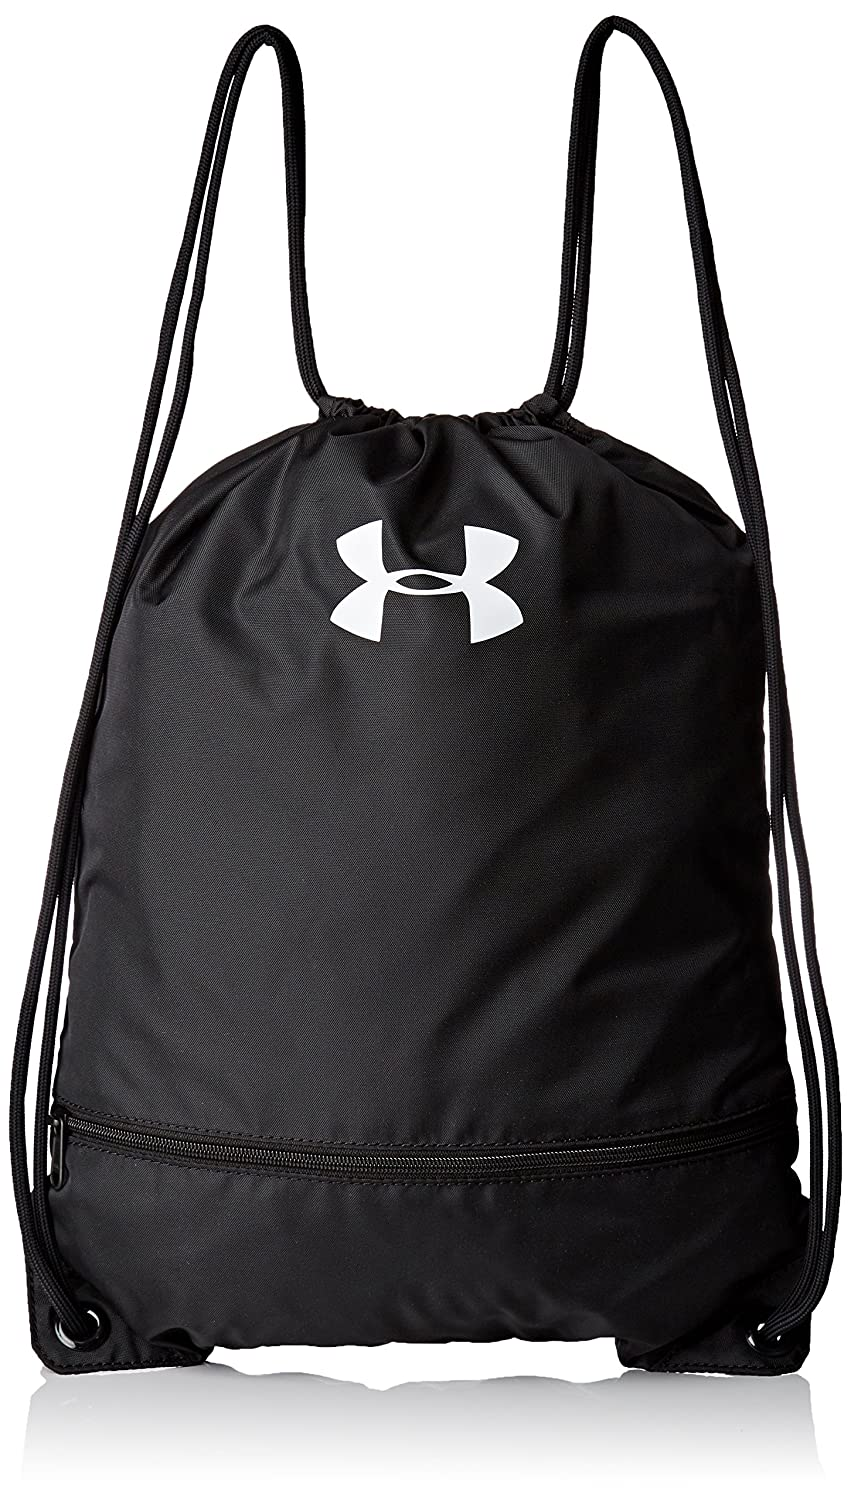 Under Armour Team Sackpack Bag,Black (001)/White, One Size Under Armour Bags 1301210